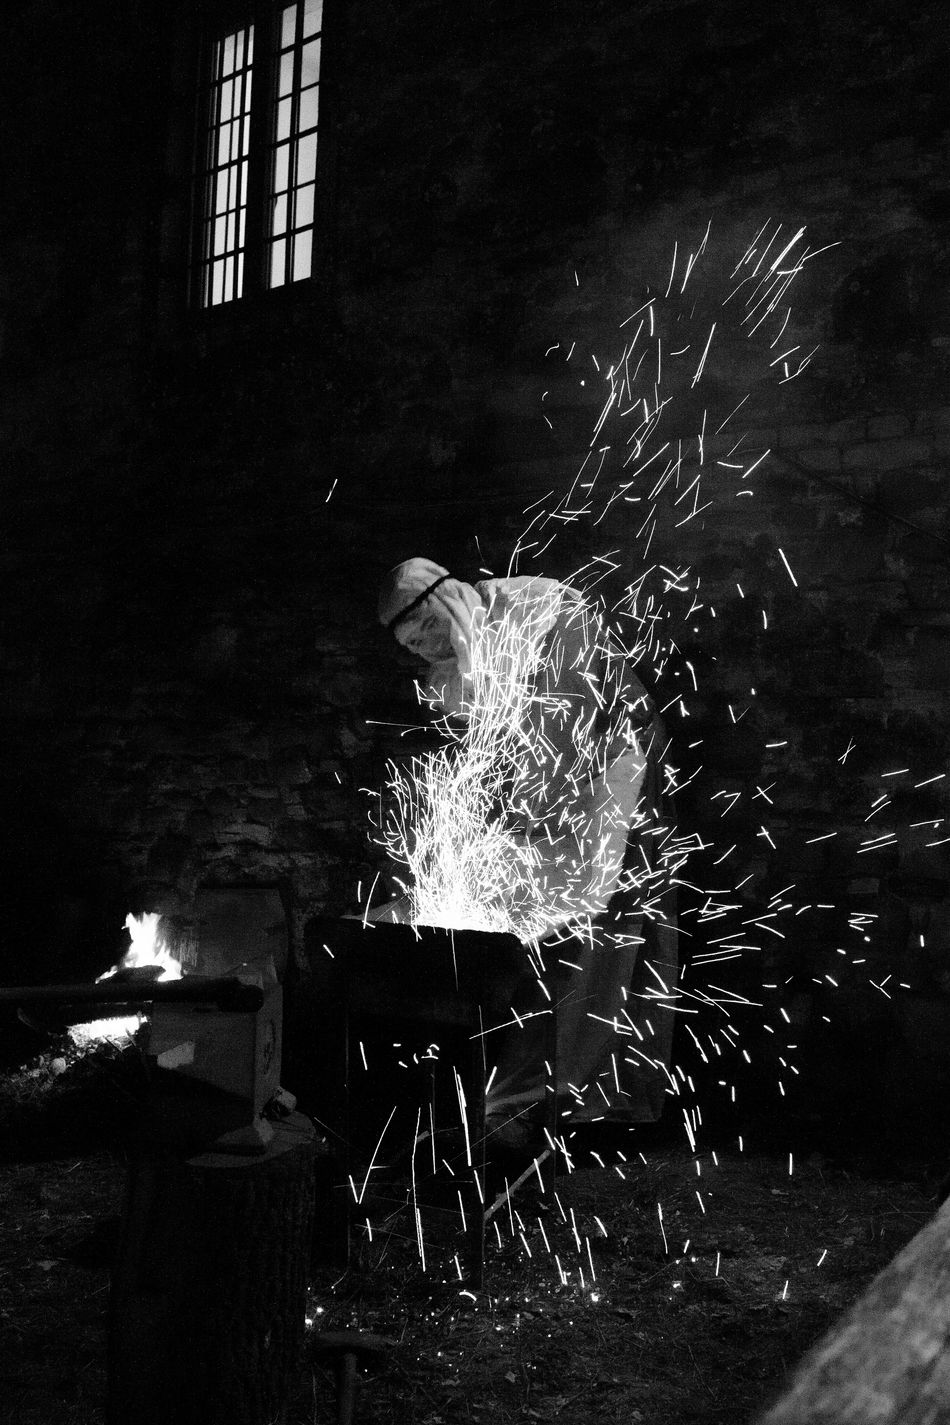 Presepe vivente a Villa Collemandina- Living Nativity in Villa Collemandina Black & White Black And White Black And White Photography Christmas Christmastime Garfagnana Italia Italy Living Nativity Natale  Nativity Night Night Photography Nightphotography Portrait Presepe Presepevivente Presepio Reportage Storytelling Tuscany Villa Collemandina The City Light Welcome To Black